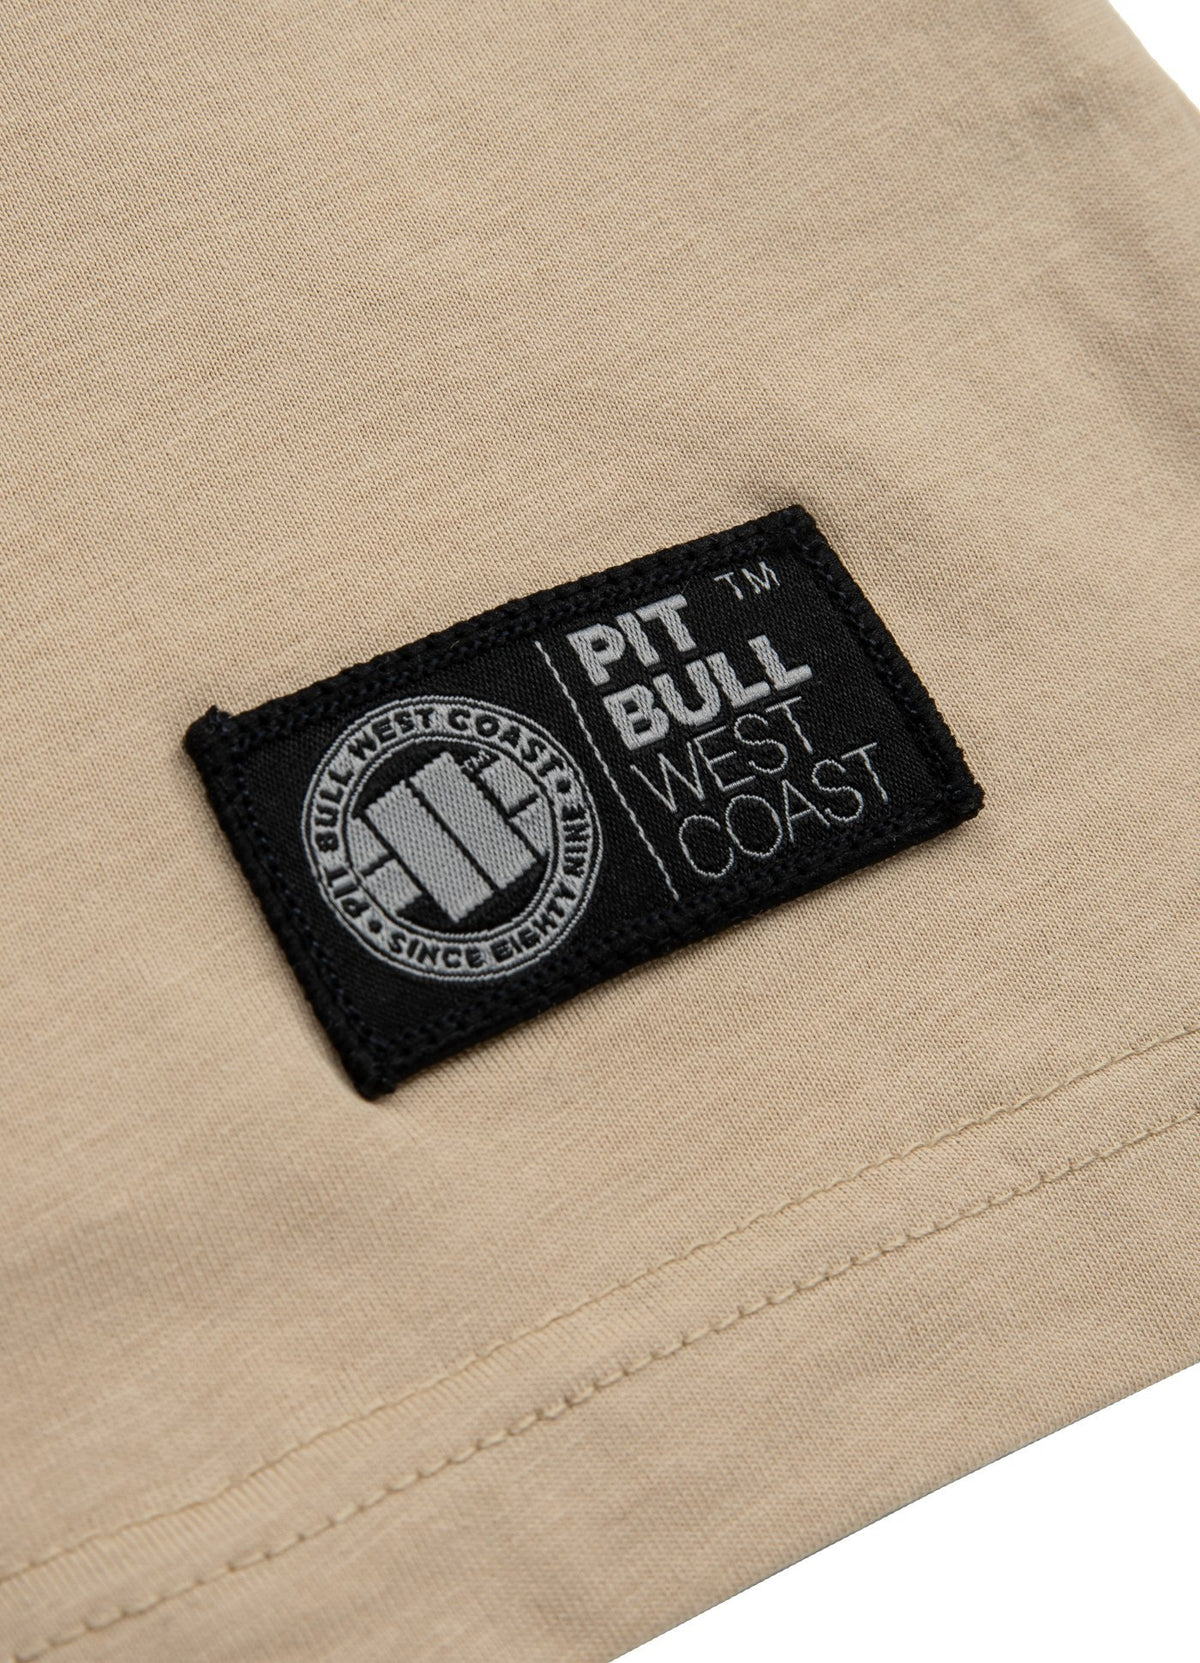 T-shirt PB INSIDE Sand - Pitbull West Coast U.S.A.